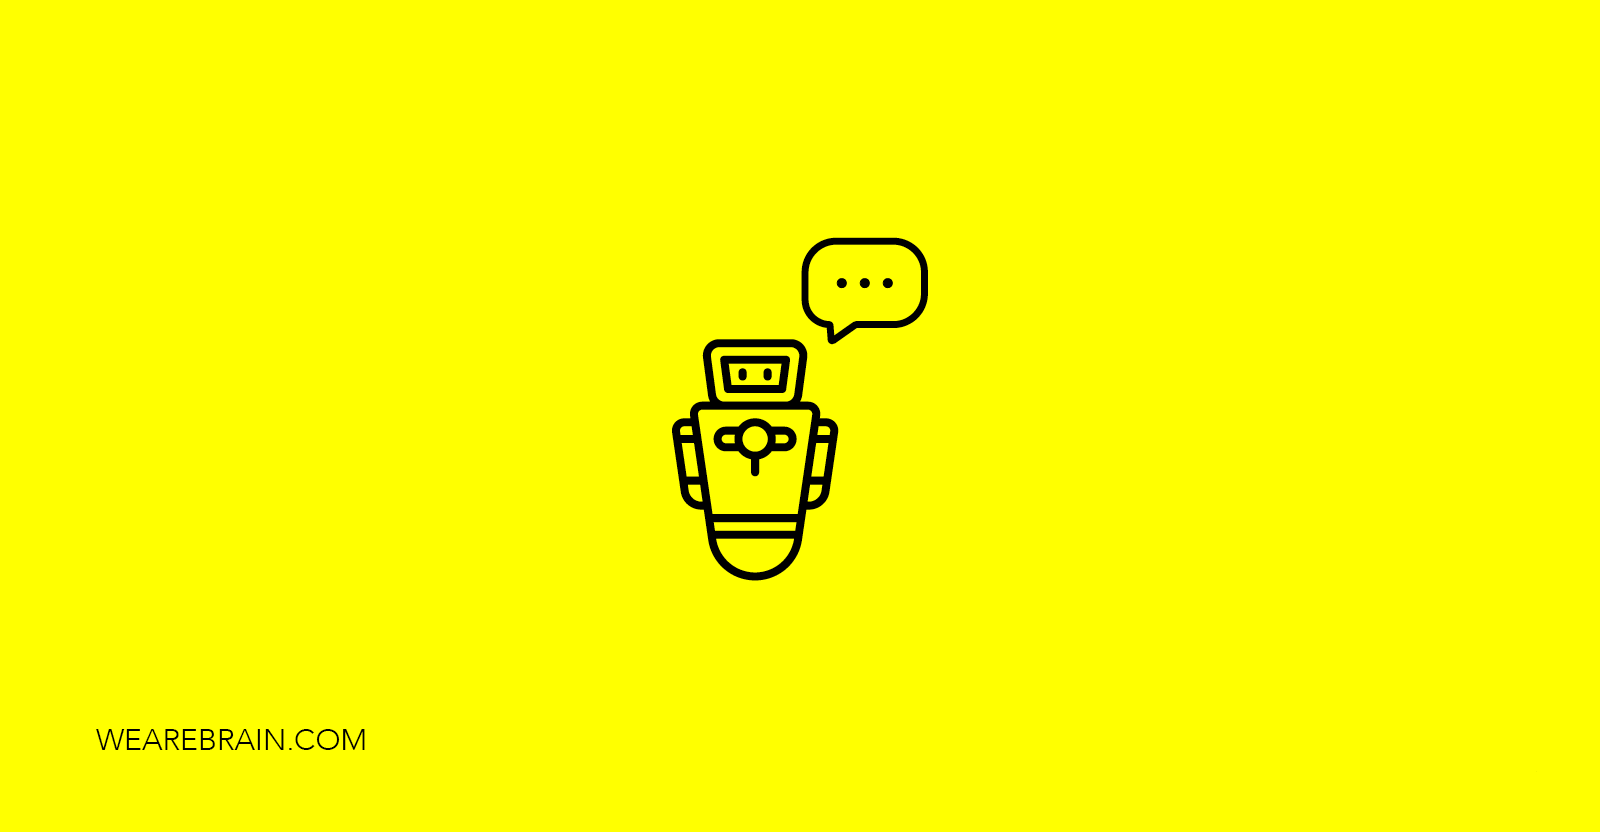 icon of a robot speaking